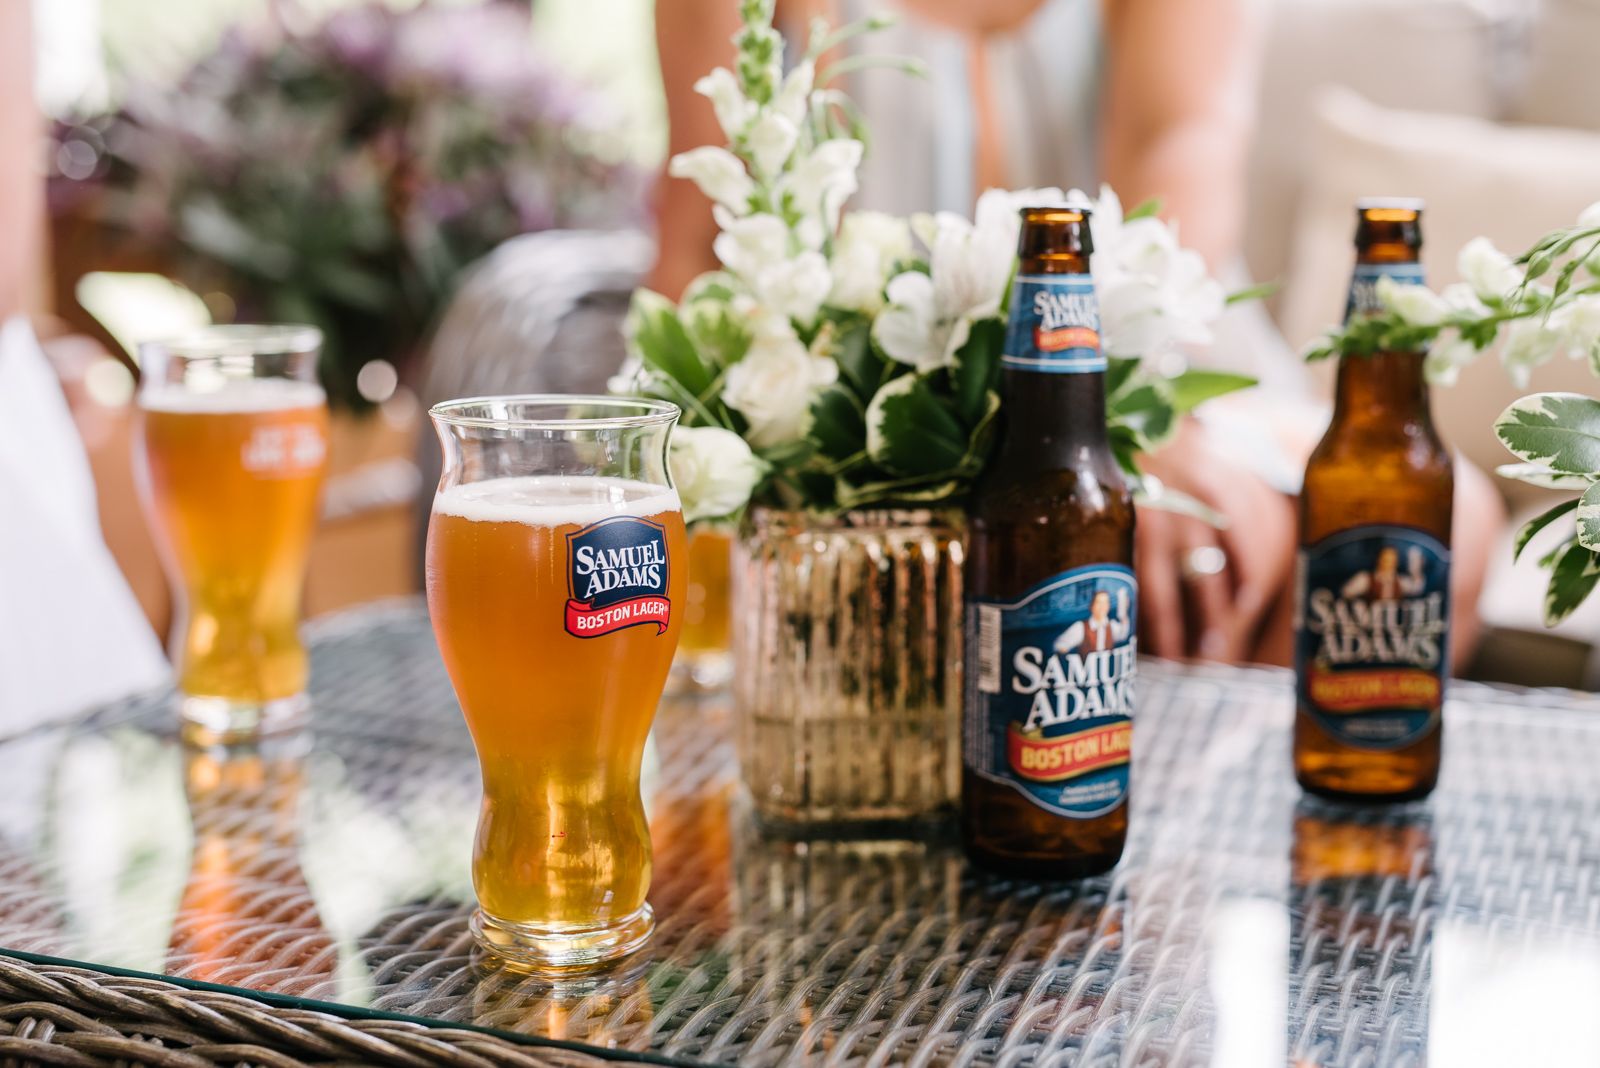 Samuel Adams boston Lager in bottles and glasses